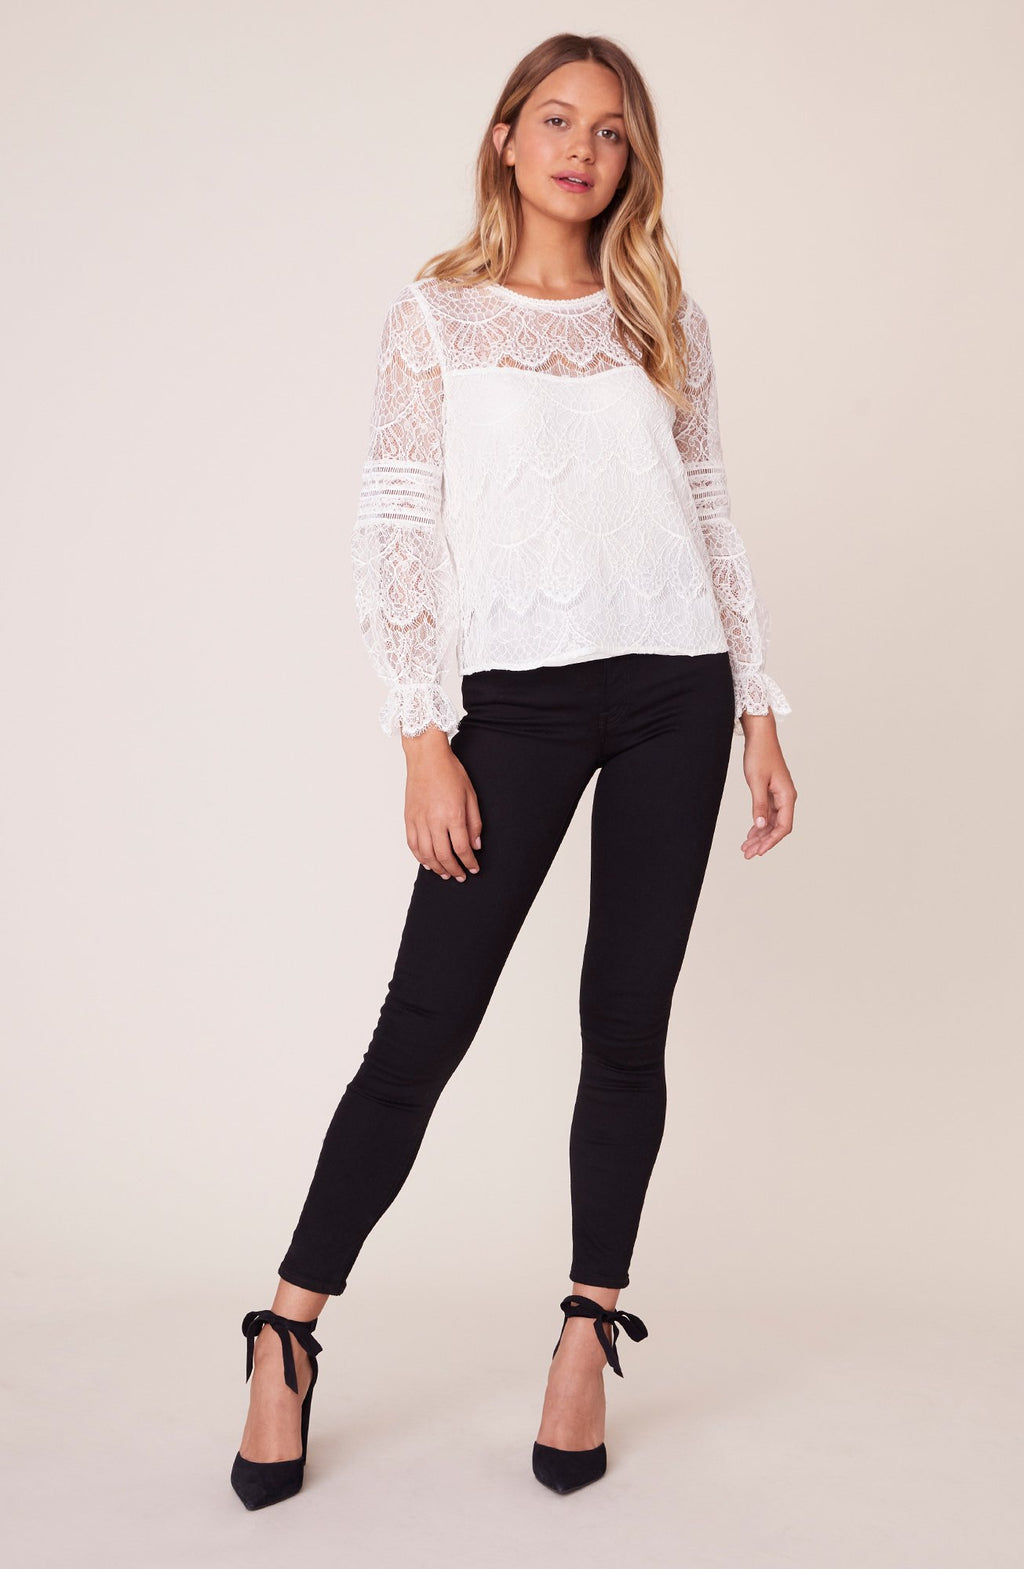 BJ304369 Smoke & Mirrors Blouse